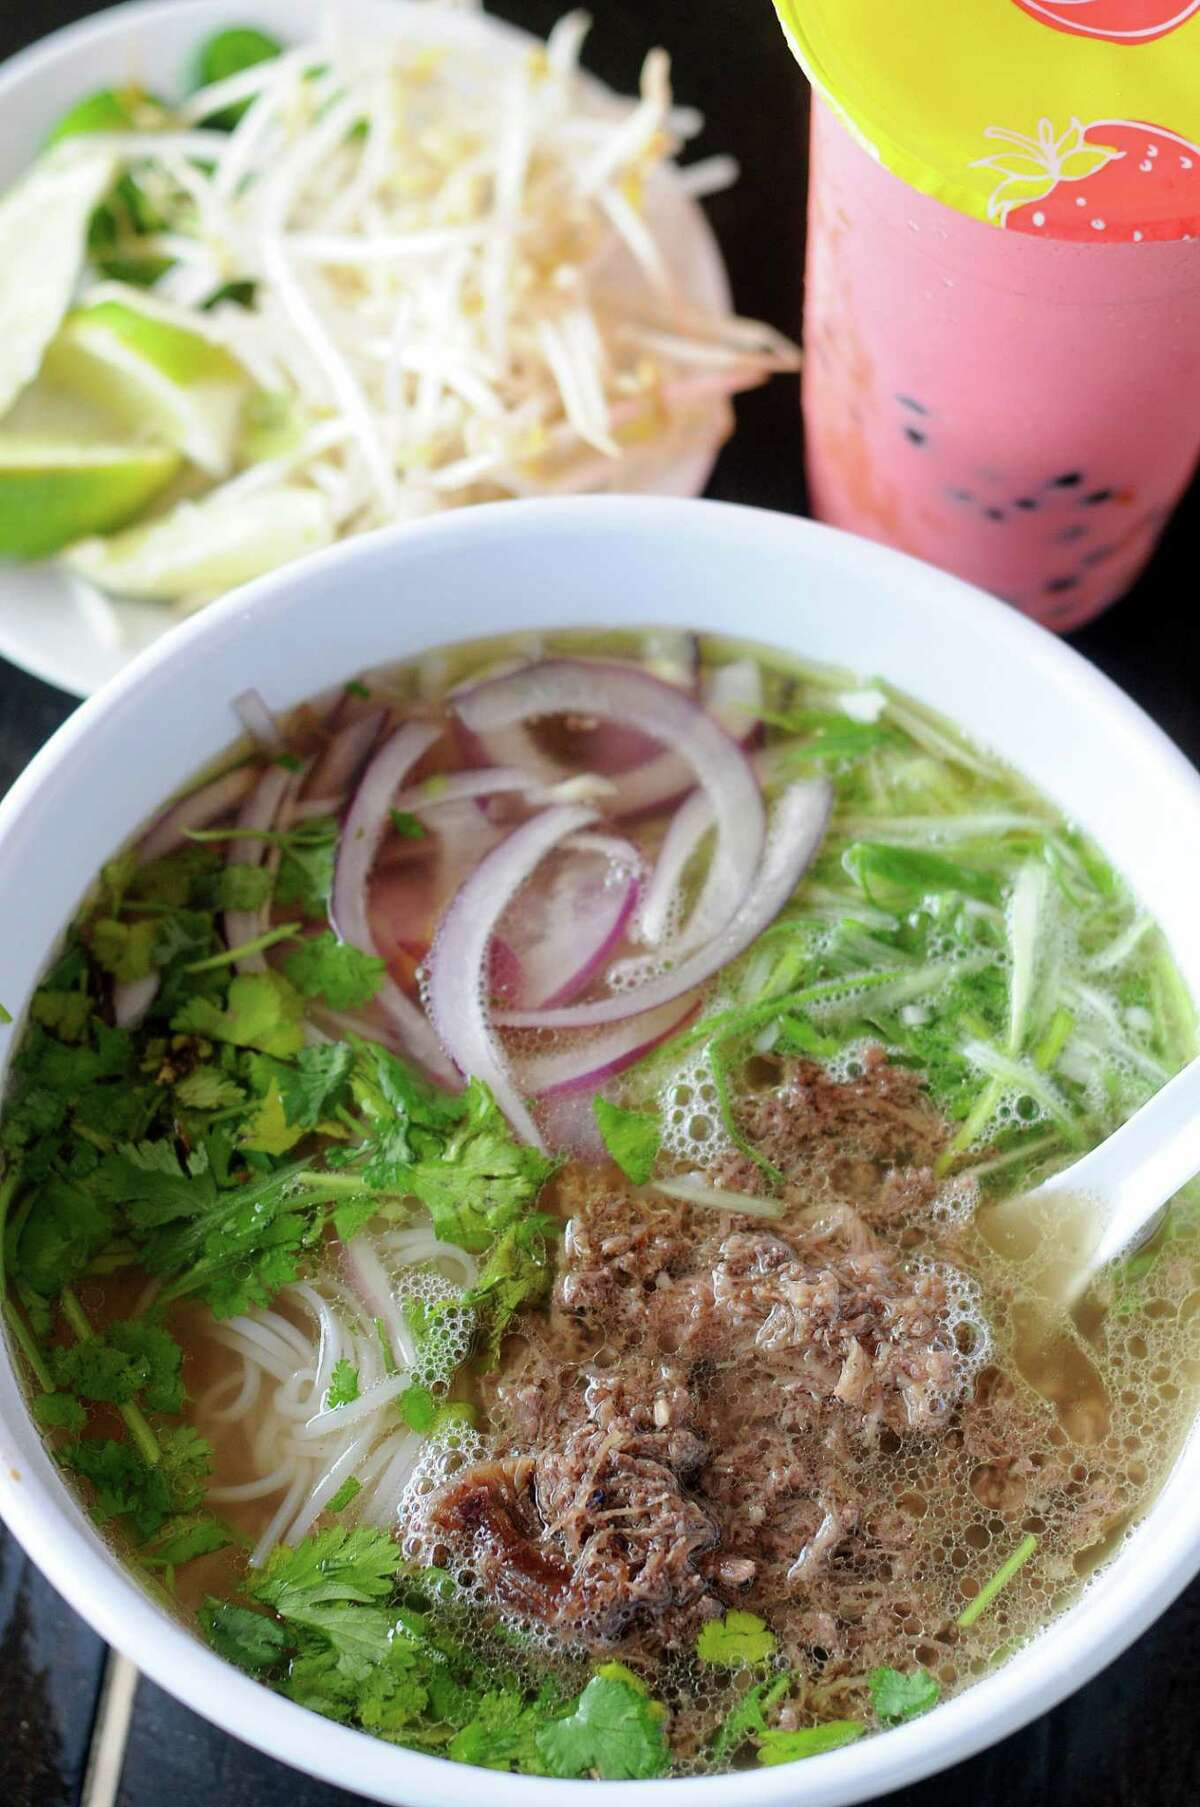 The barbacoa pho at Suck It: The Restaurant tastes surprisingly San Antonio, featuring a tangle of barbacoa swimming in a bowl of beefy broth garnished with red onion, scallions, cilantro and jalapeños.